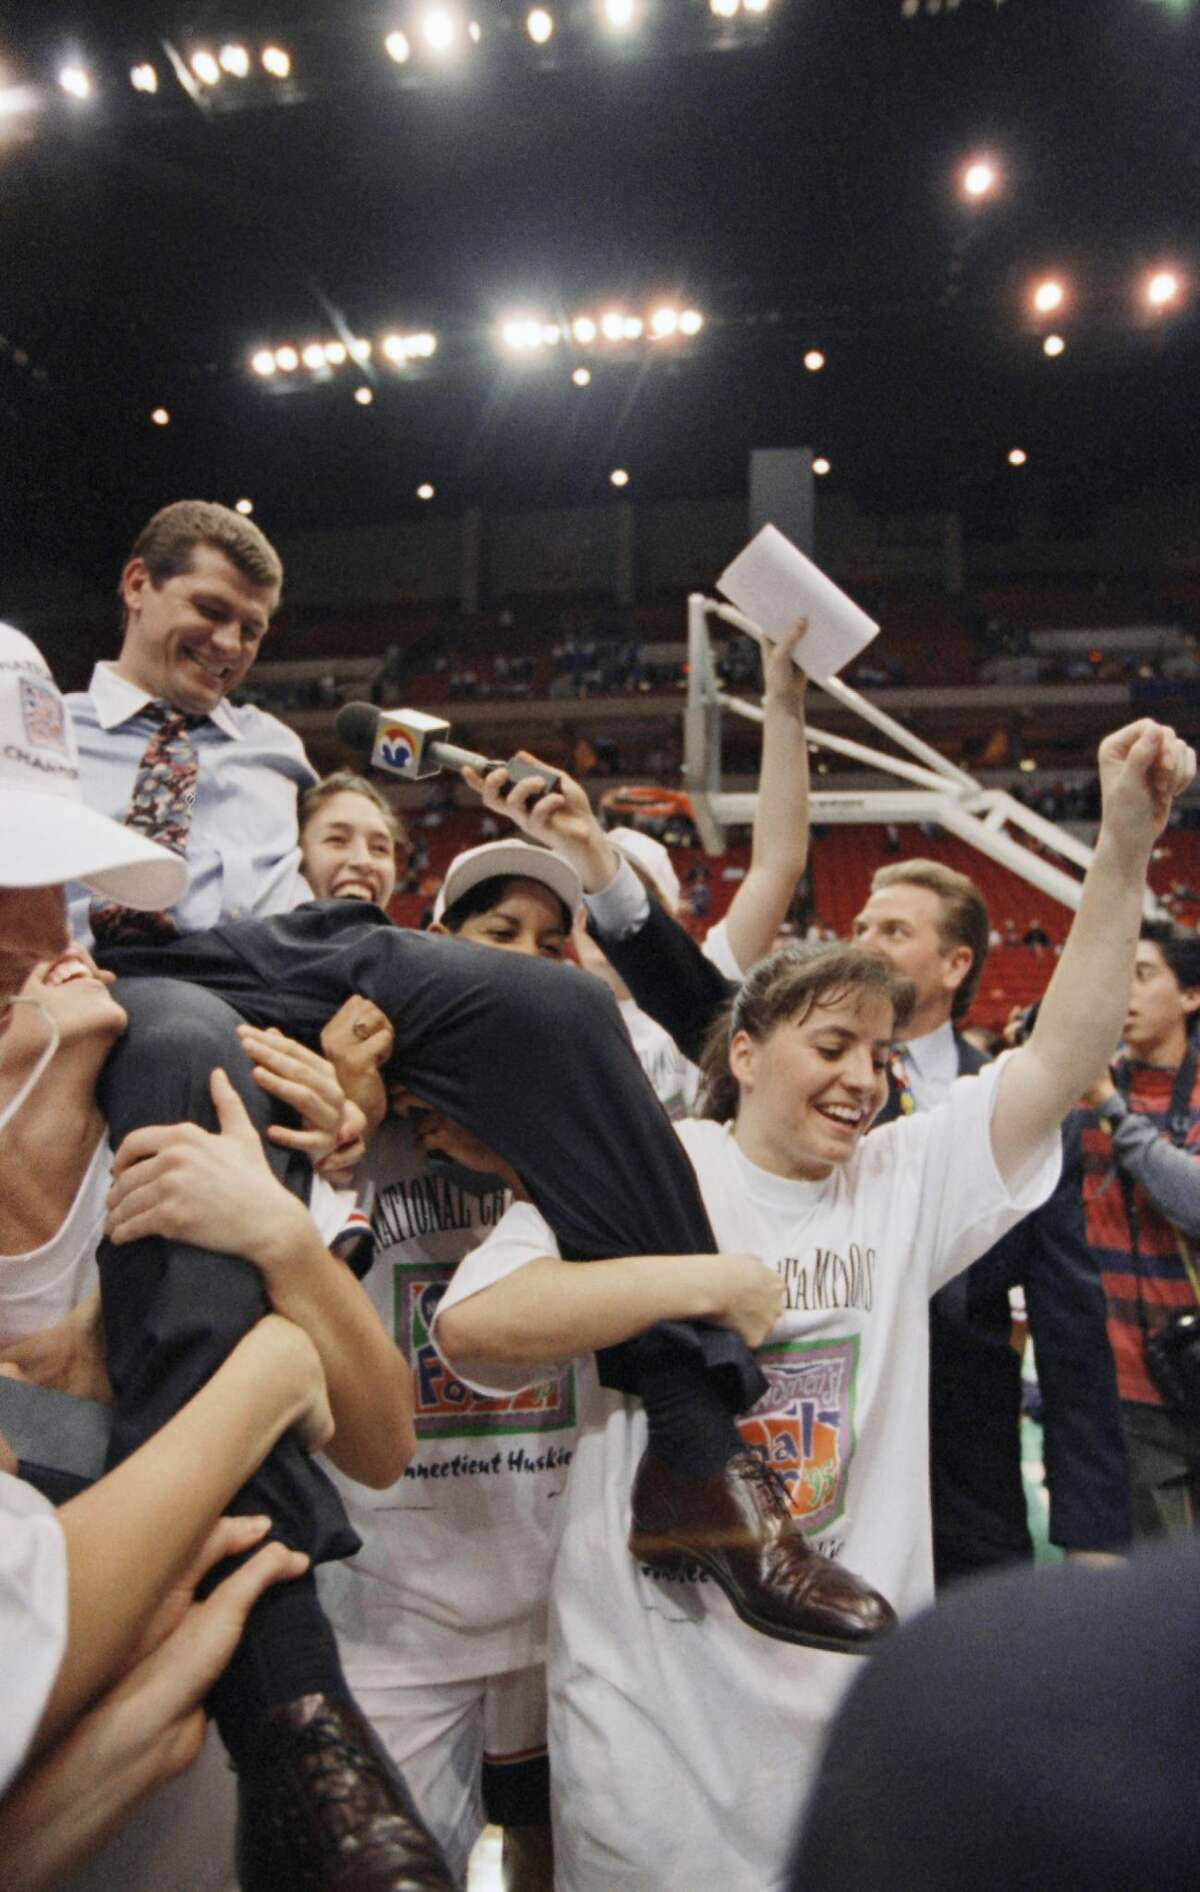 In this 1995 photo, Auriemma rides on the shoulders of his players after Connecticut beat Tennessee 70-64 to take the NCAA Womens Final Four Championship in Minneapolis, Minn. Auriemma and the UConn Huskies have turned women's college basketball into their own showcase. Over the past two decades, the Hall of Fame coach and his players have been the face of the sport, winning 11 championships and poised to make a run at a 12th title.